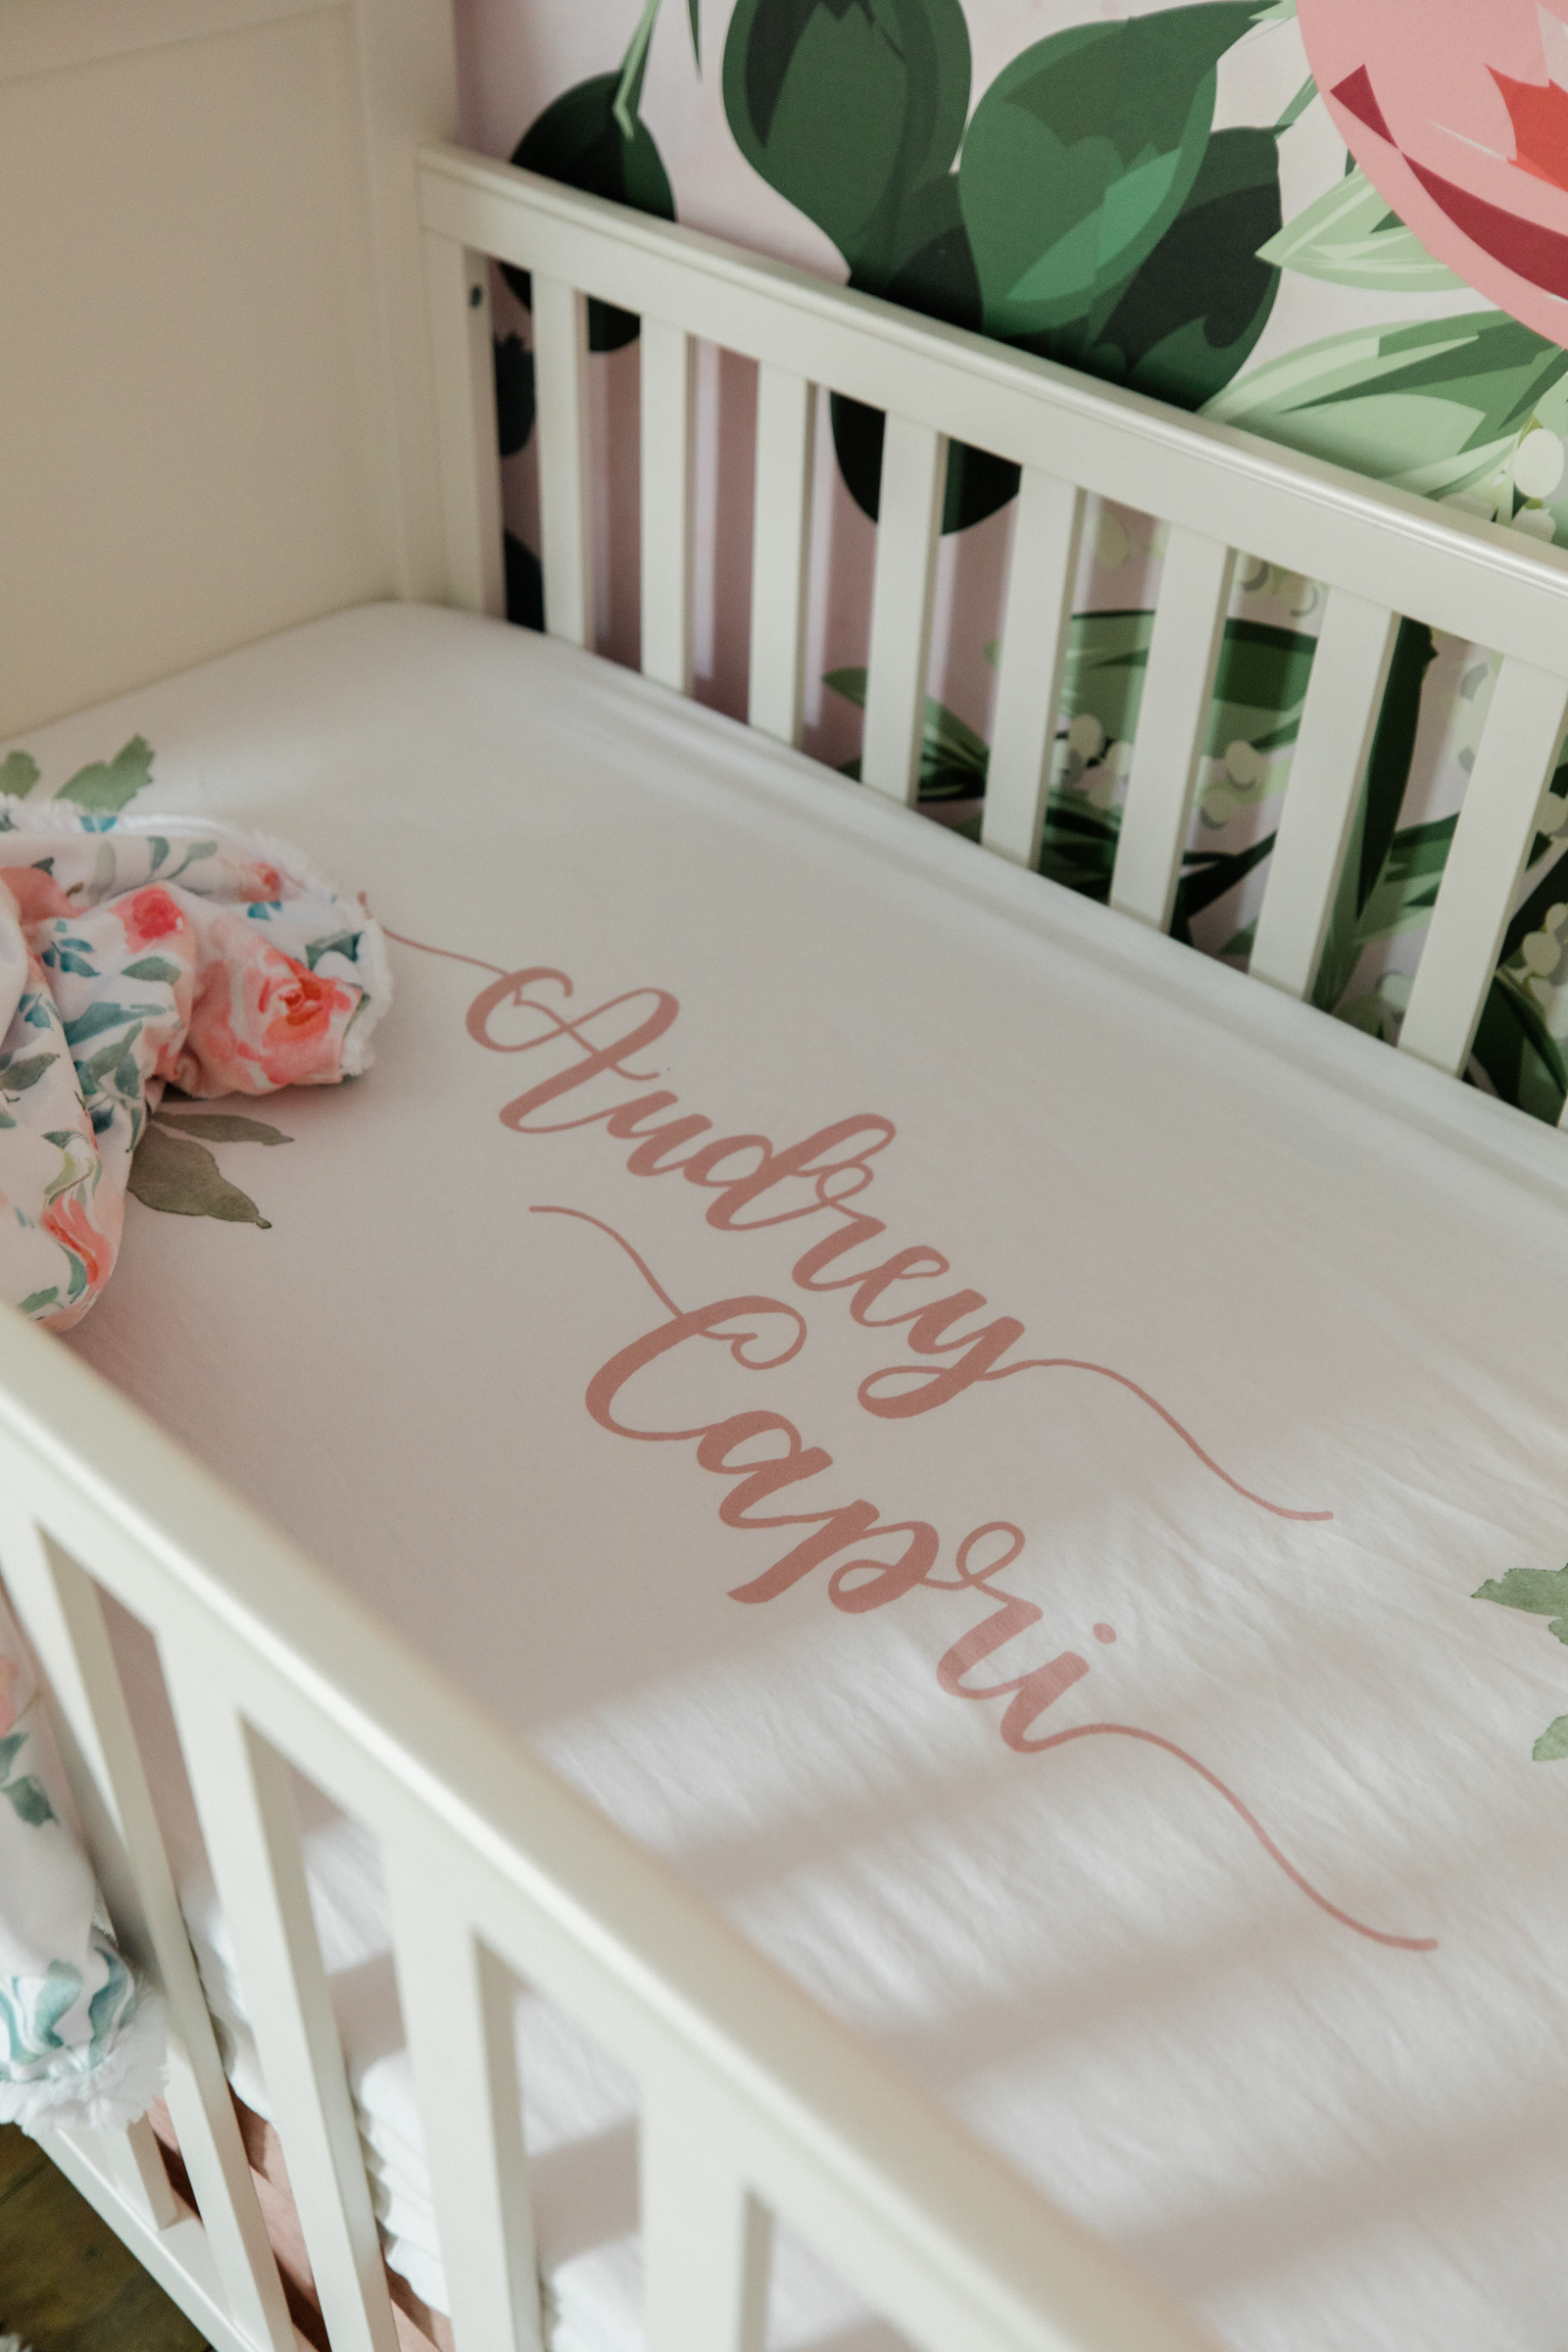 Houston lifestyle blogger Elly Brown reveals Audrey's custom crib bedding as a part of the nursery decor